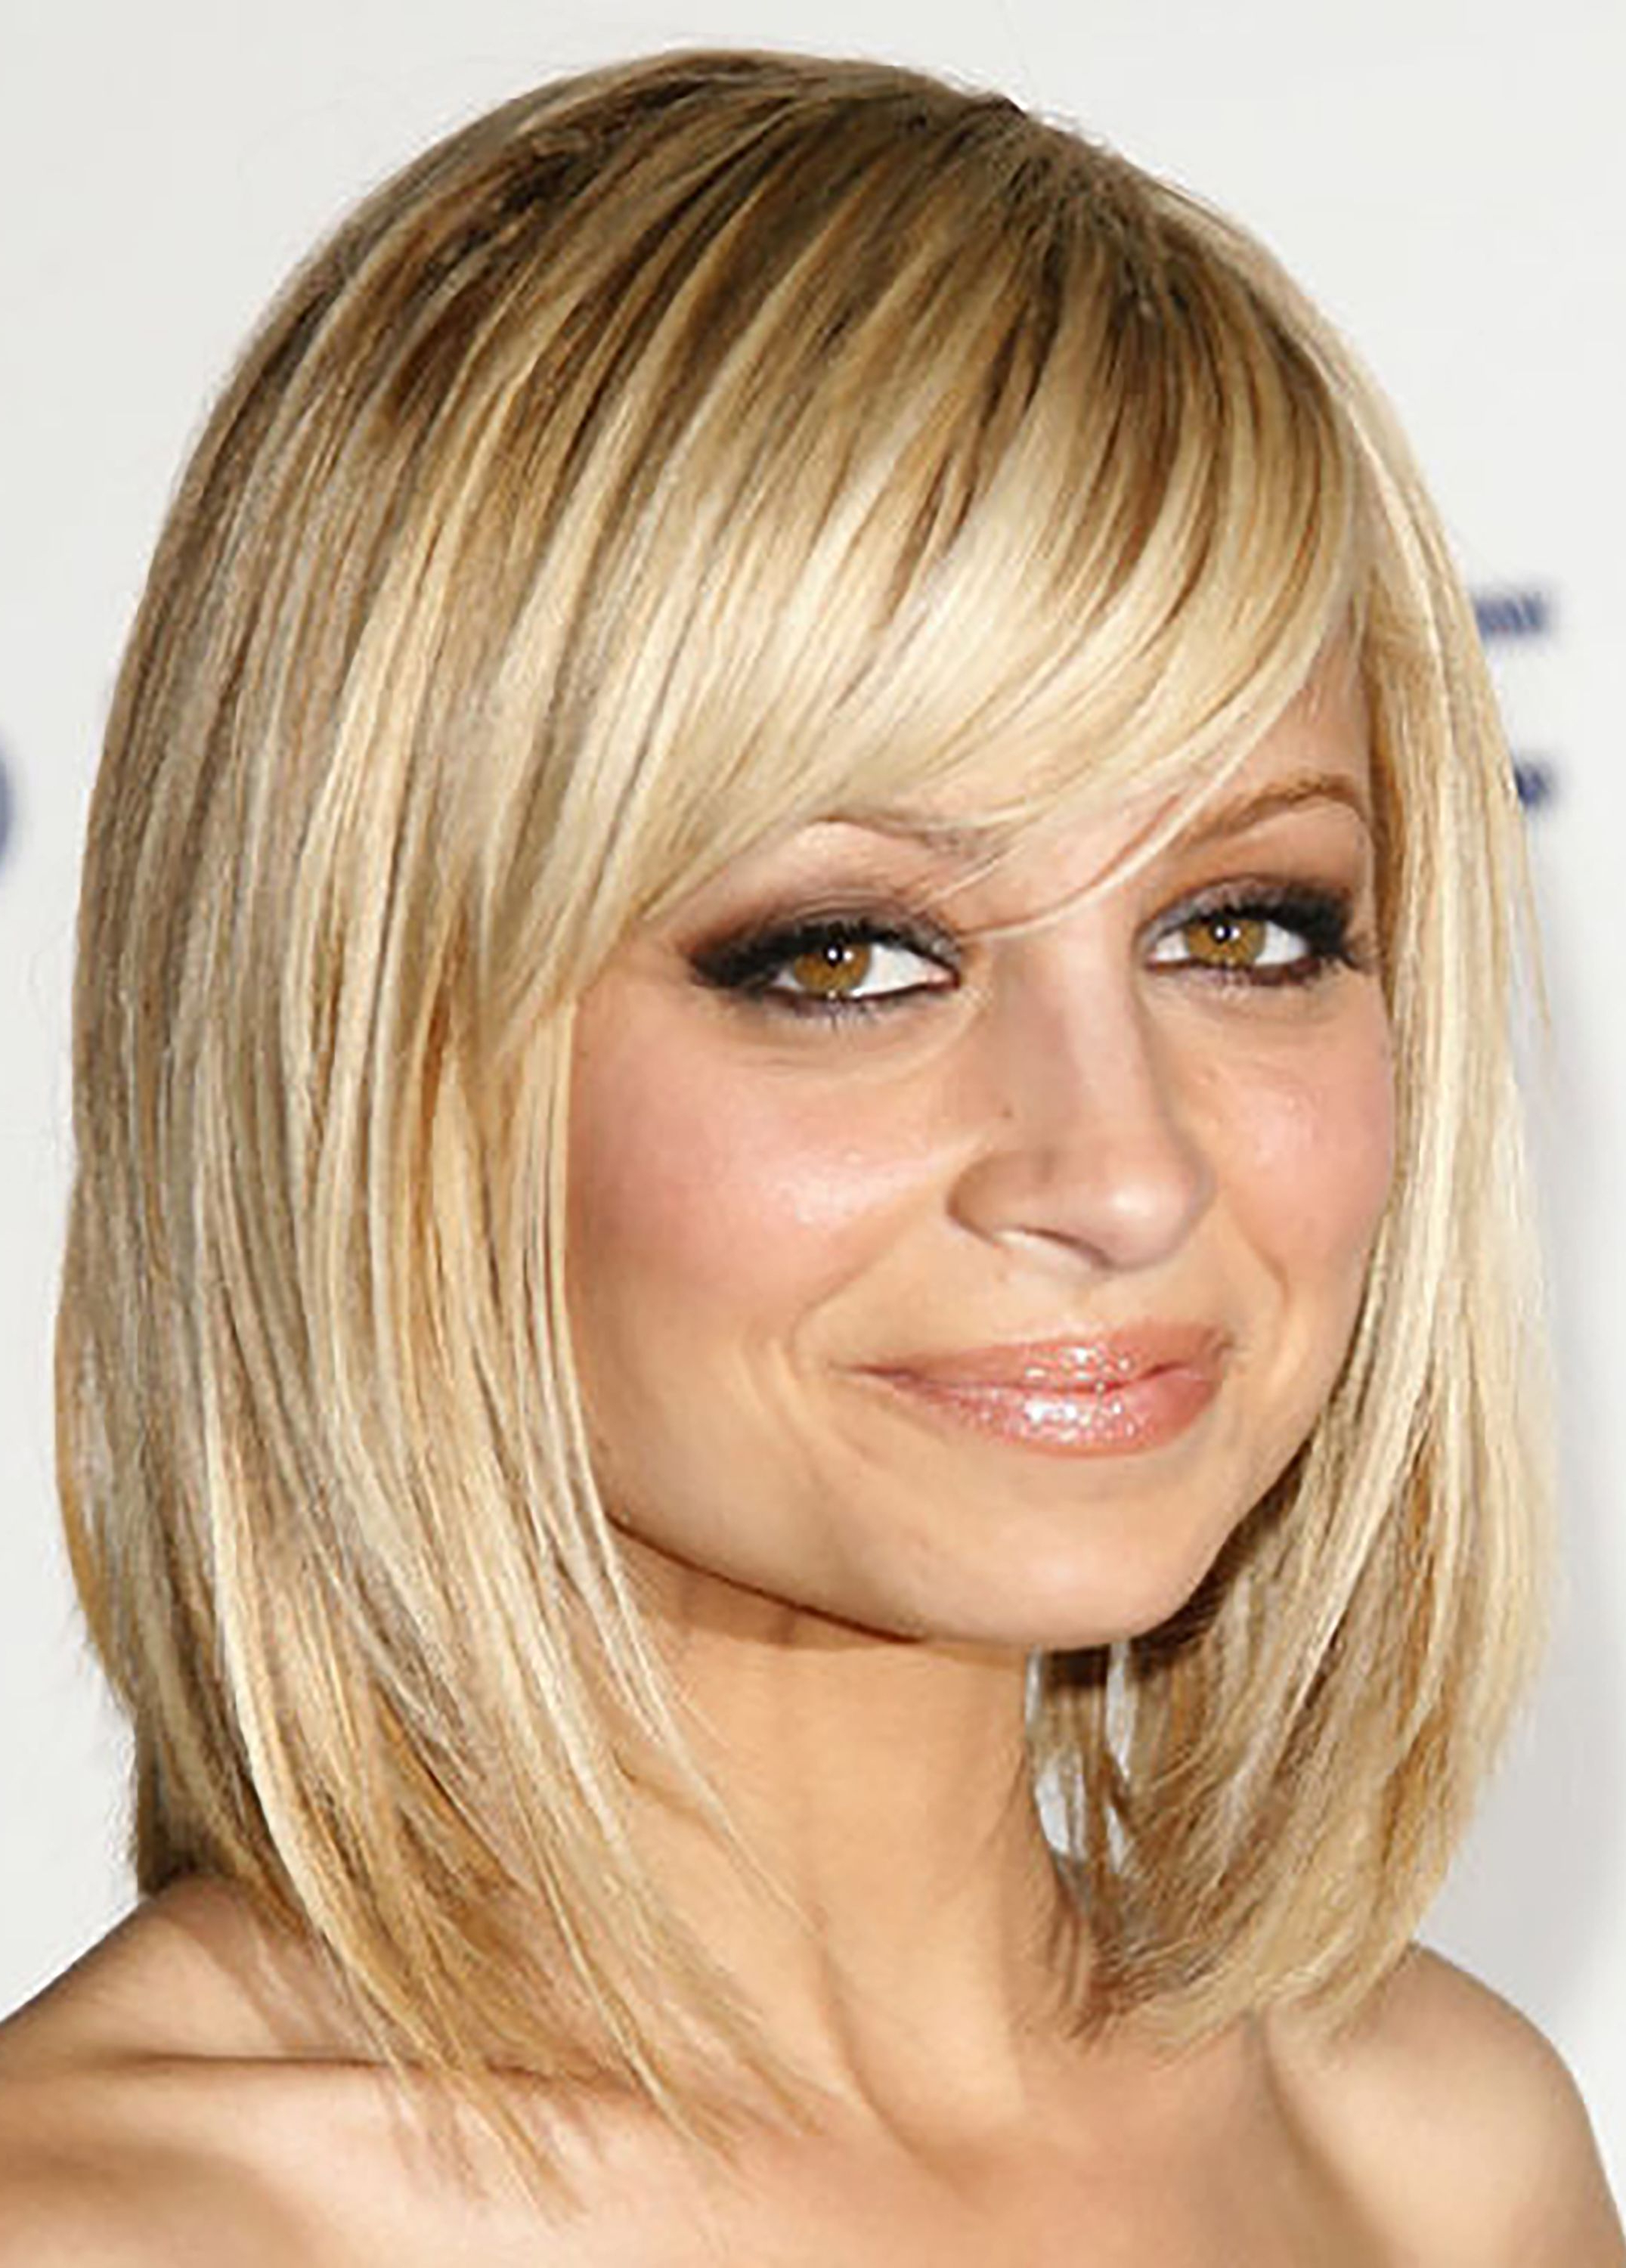 35 Cute Short Haircuts For Women 2018 – Easy Short Female Hairstyle With Regard To Short Hairstyles Covering Ears (View 20 of 25)